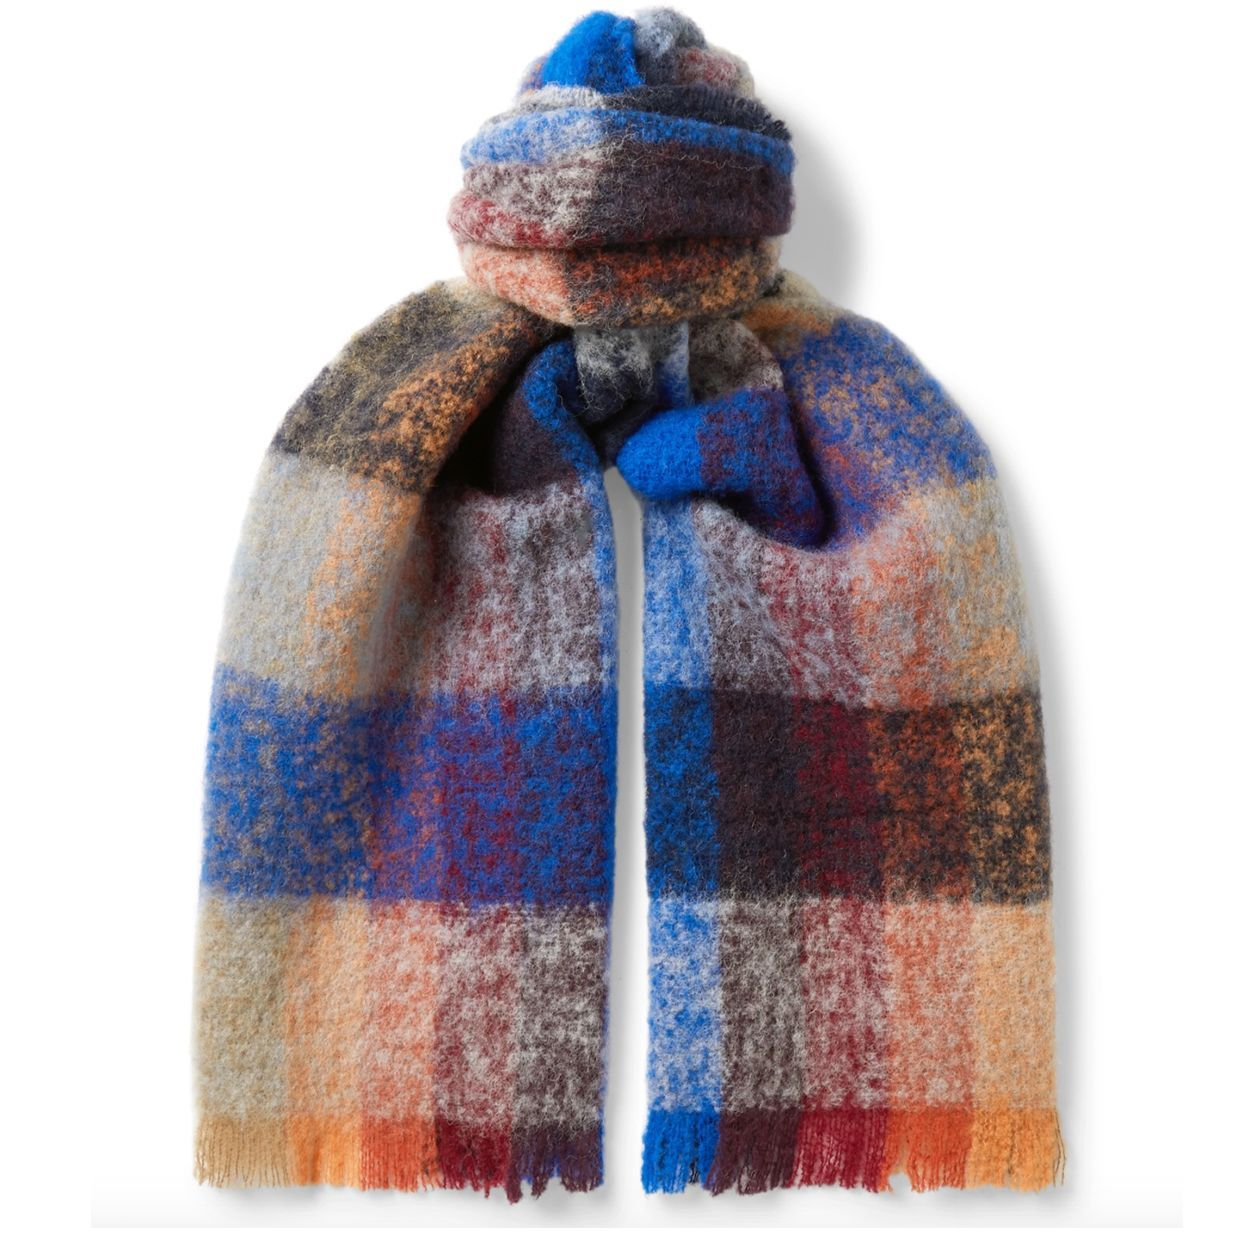 20 Best Men's Scarves for Fall and Winter 2021 - Unique Scarf Styles